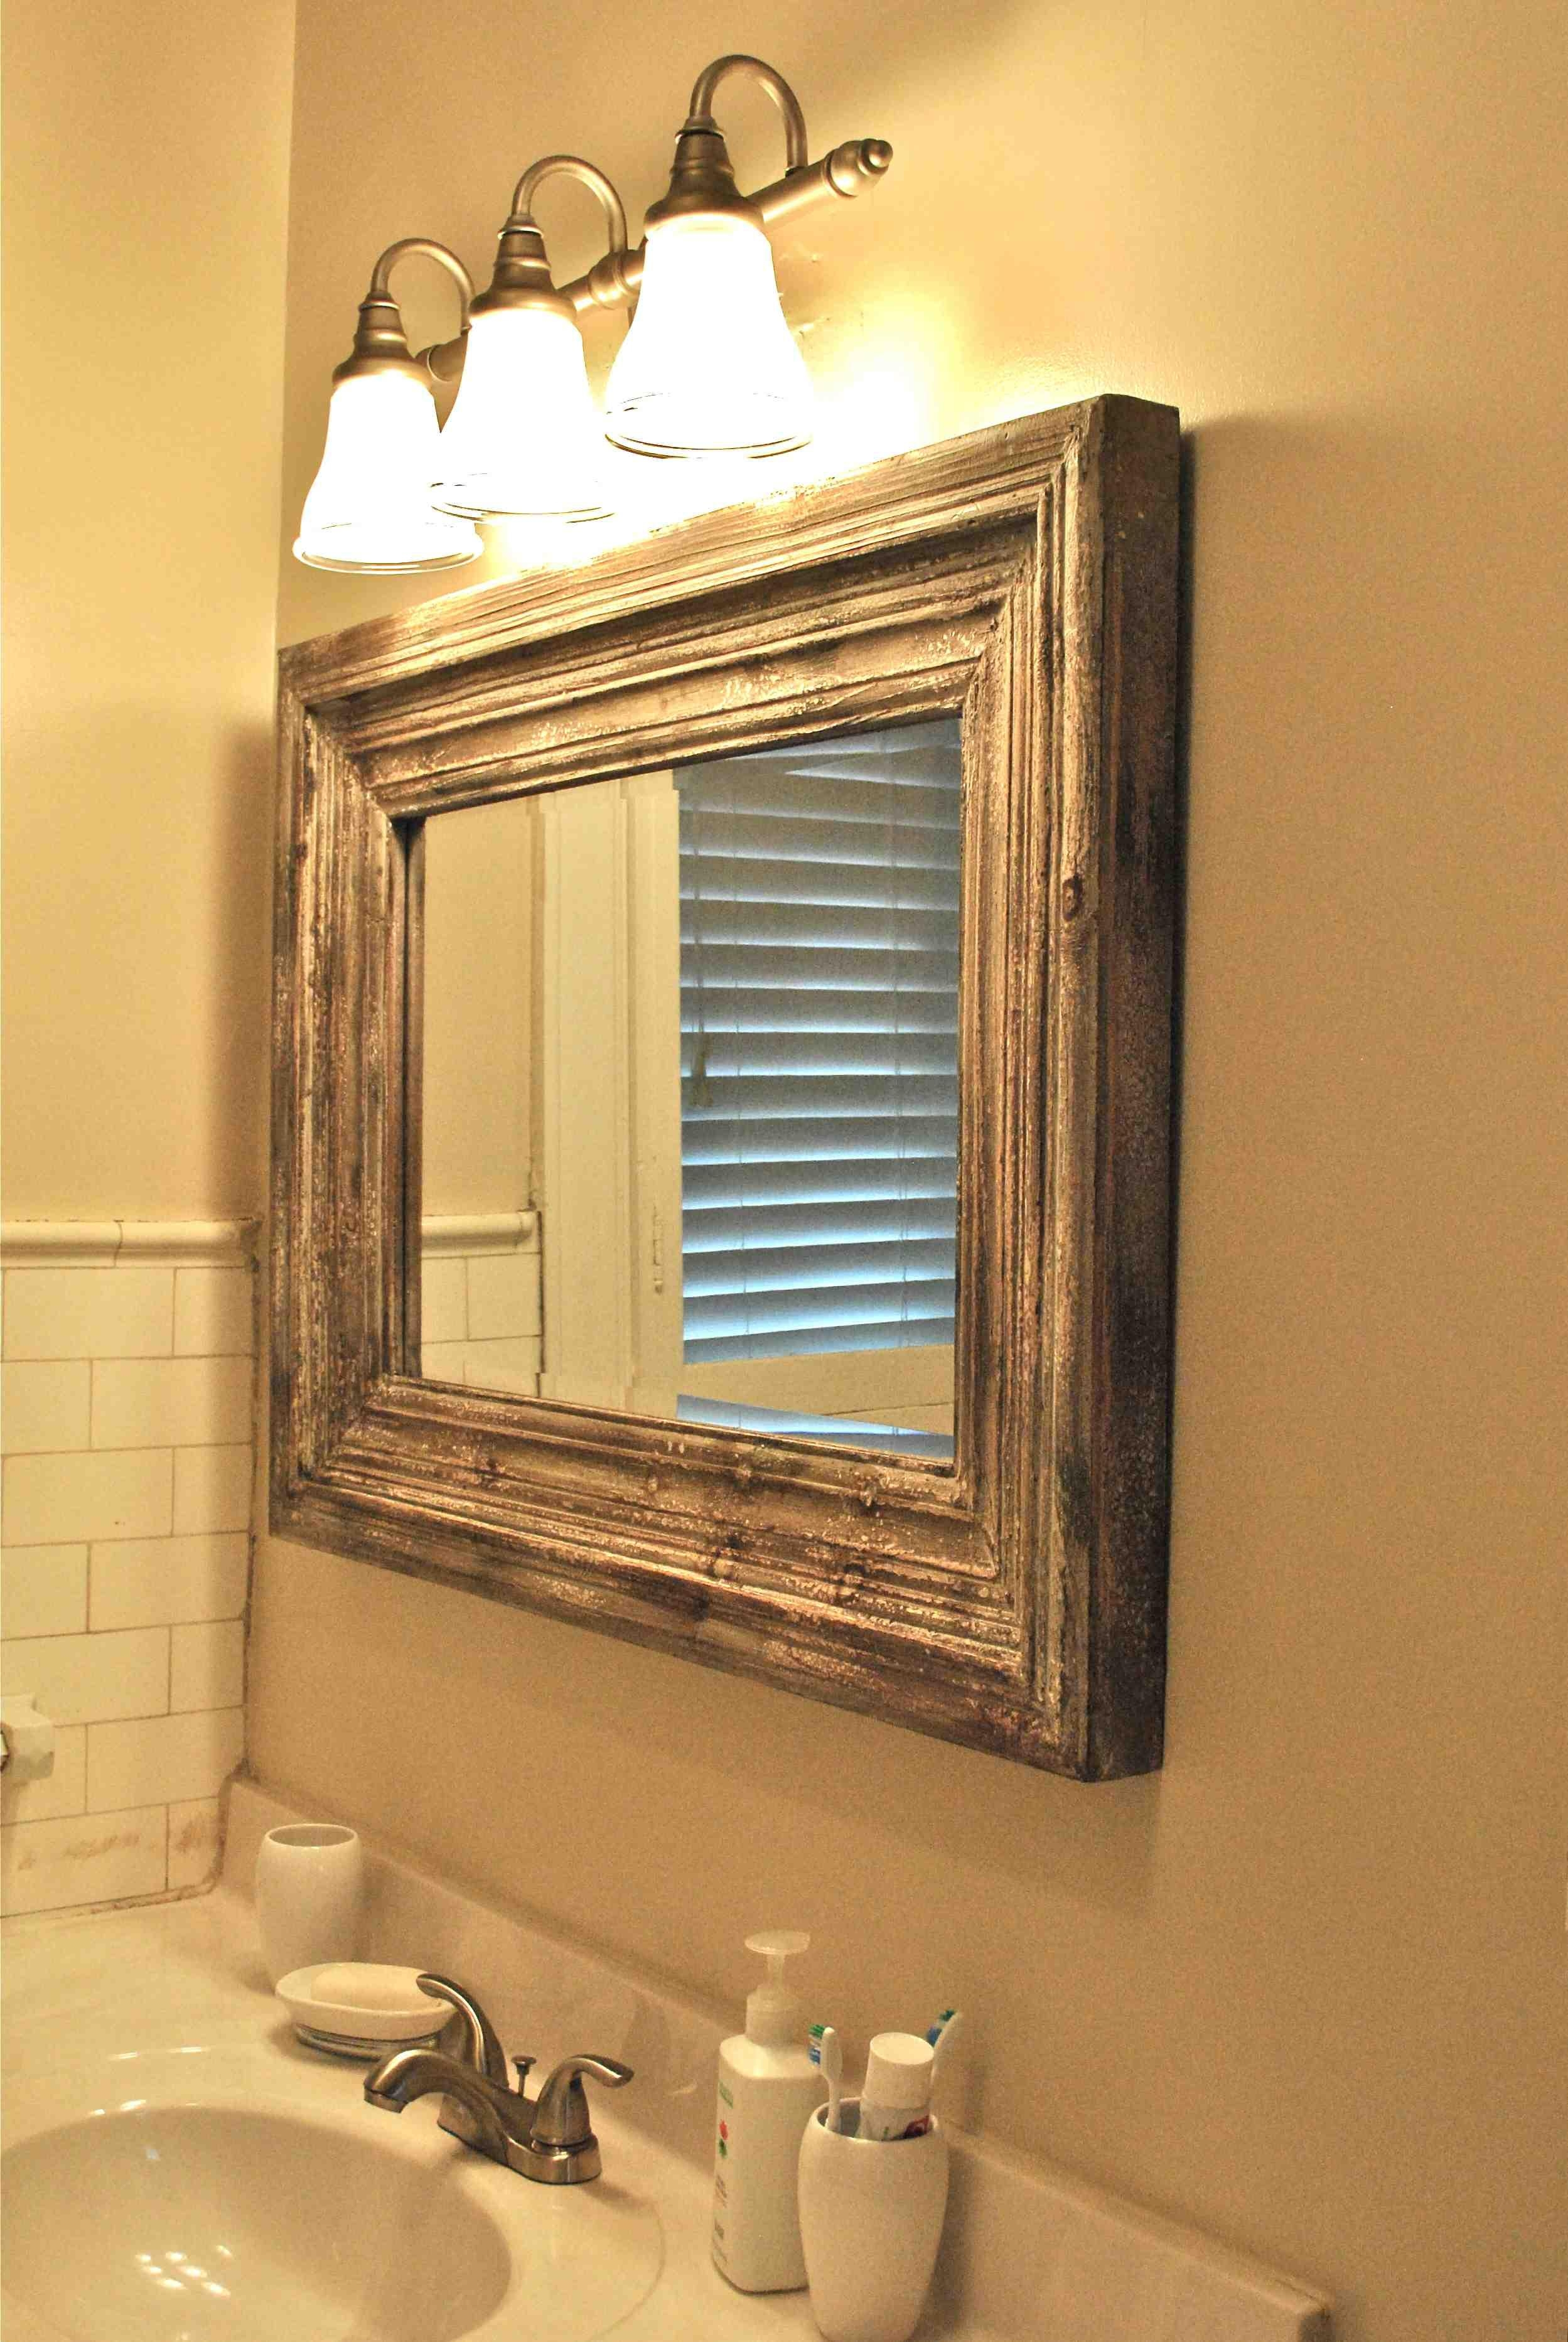 Bathroom: Lowes Bathroom Lighting Plus Mirror Ideas With Regard To Bathroom Lights And Mirrors (Image 13 of 20)